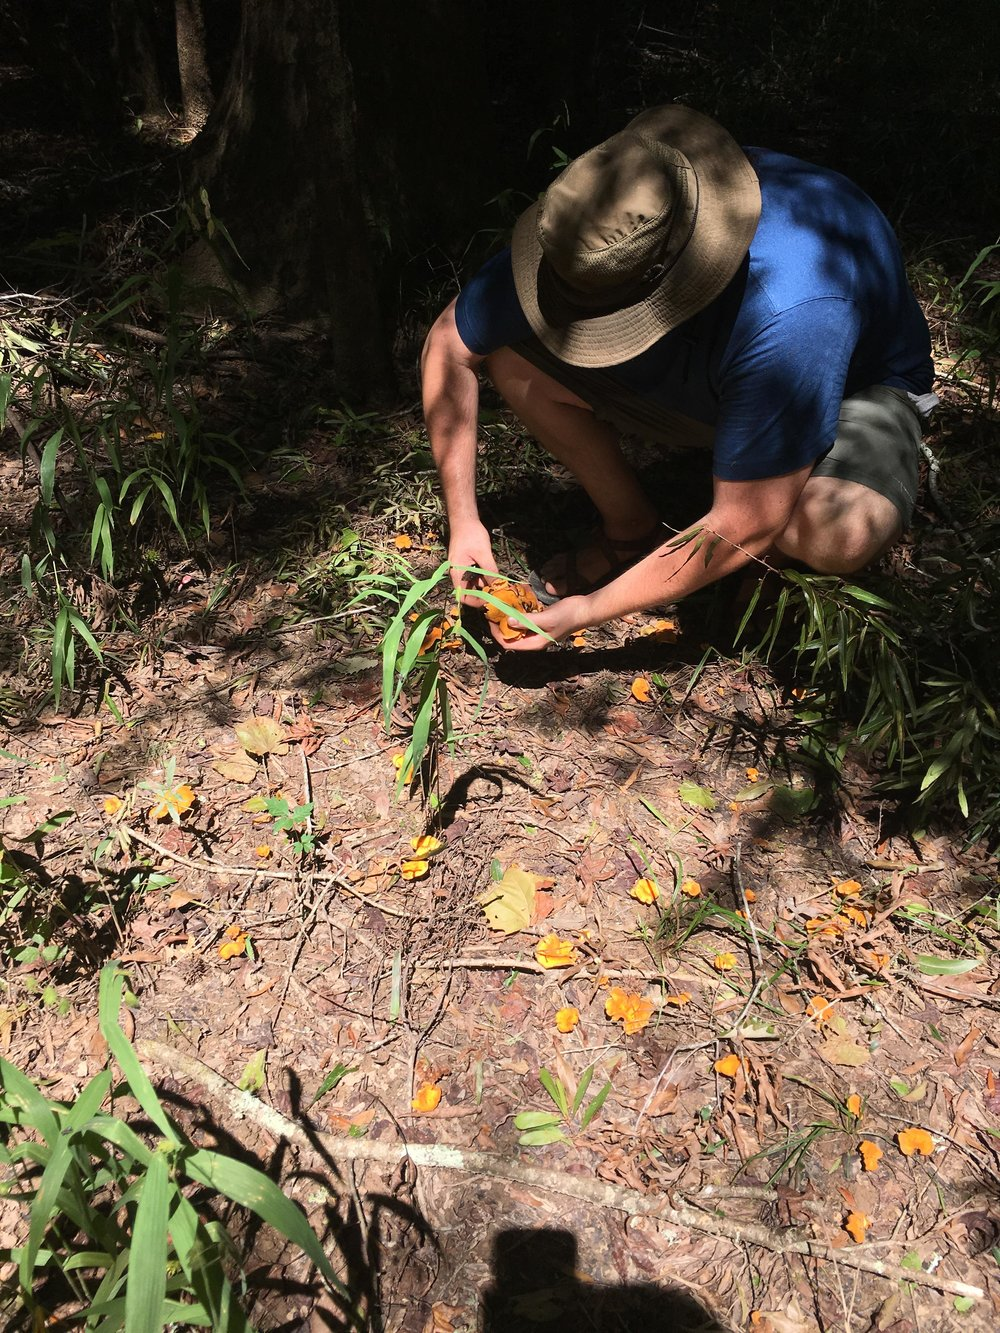 Harvesting a few choice Chanterelles.